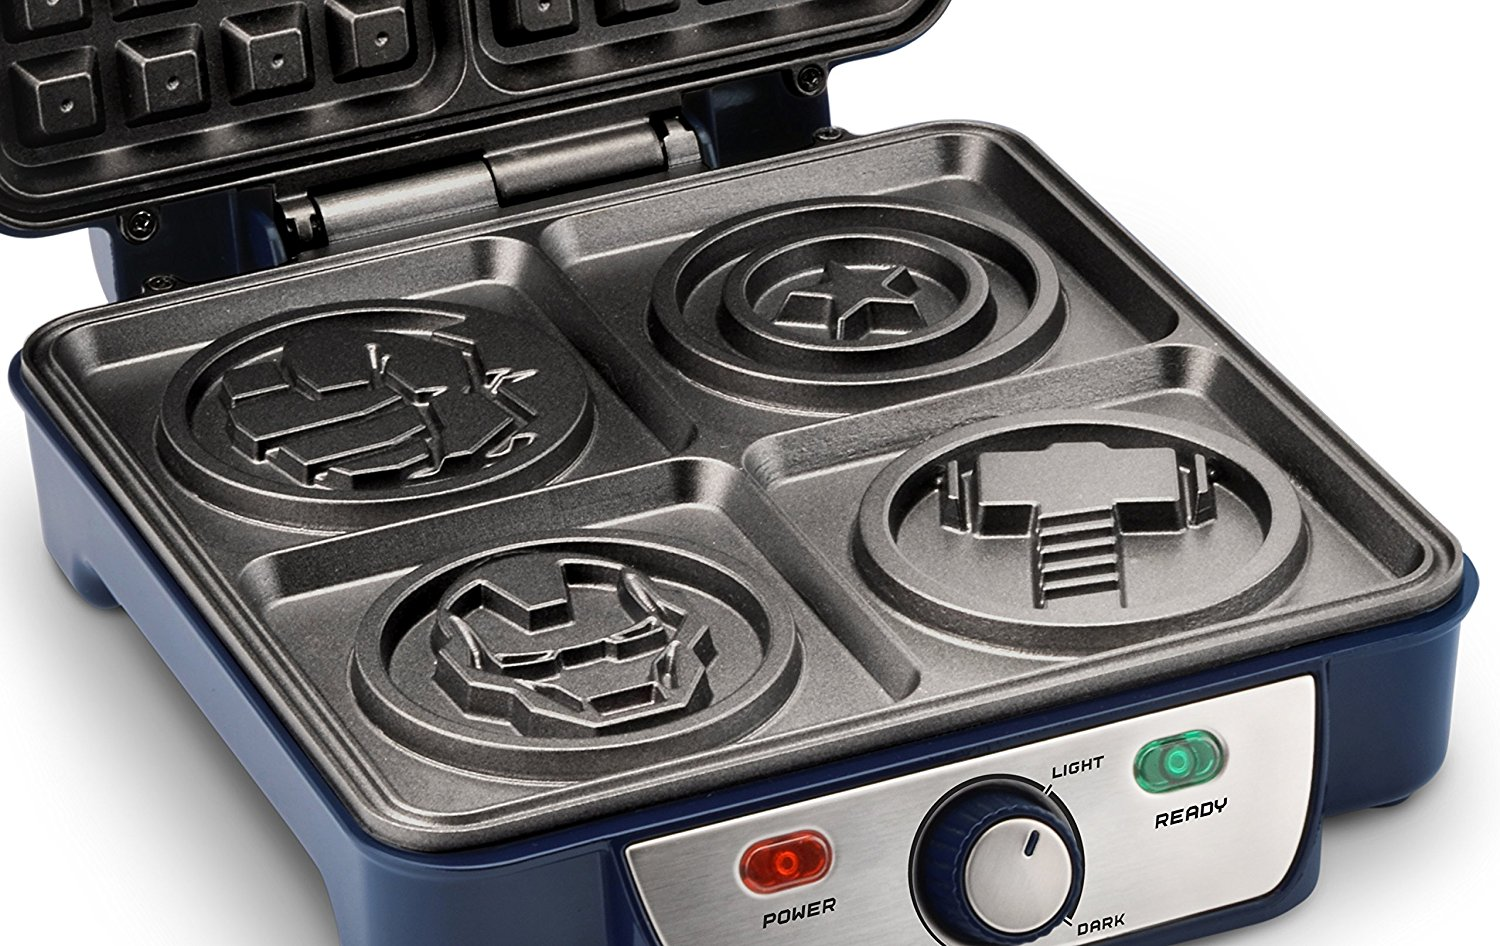 Avengers Waffle Iron Marvel's Top 2 Waffle Makers that you need to know